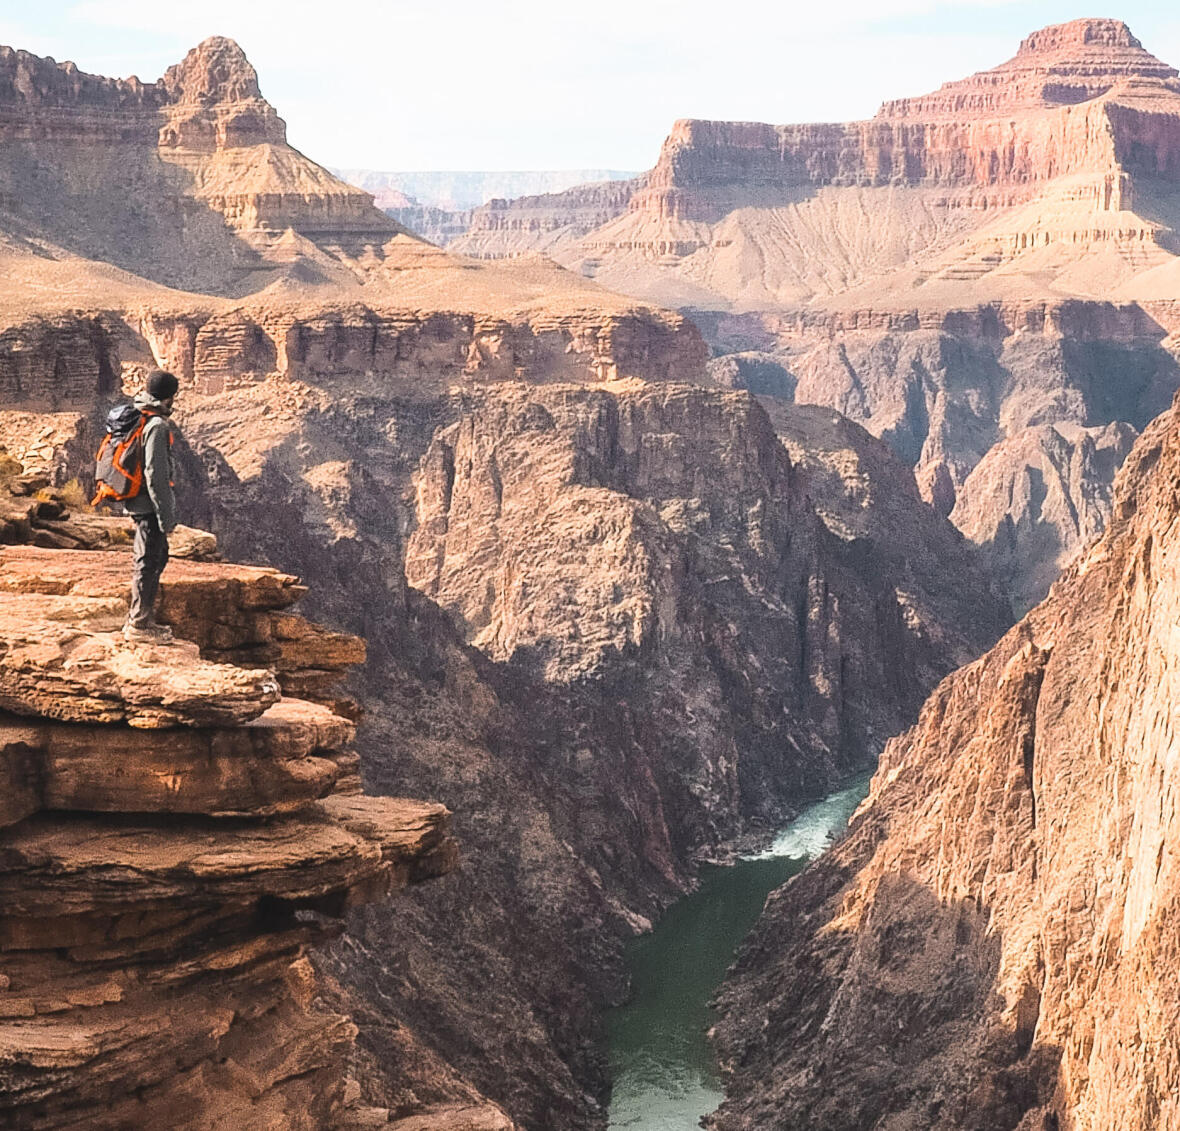 VANLIFE IN THE GRAND CANYON